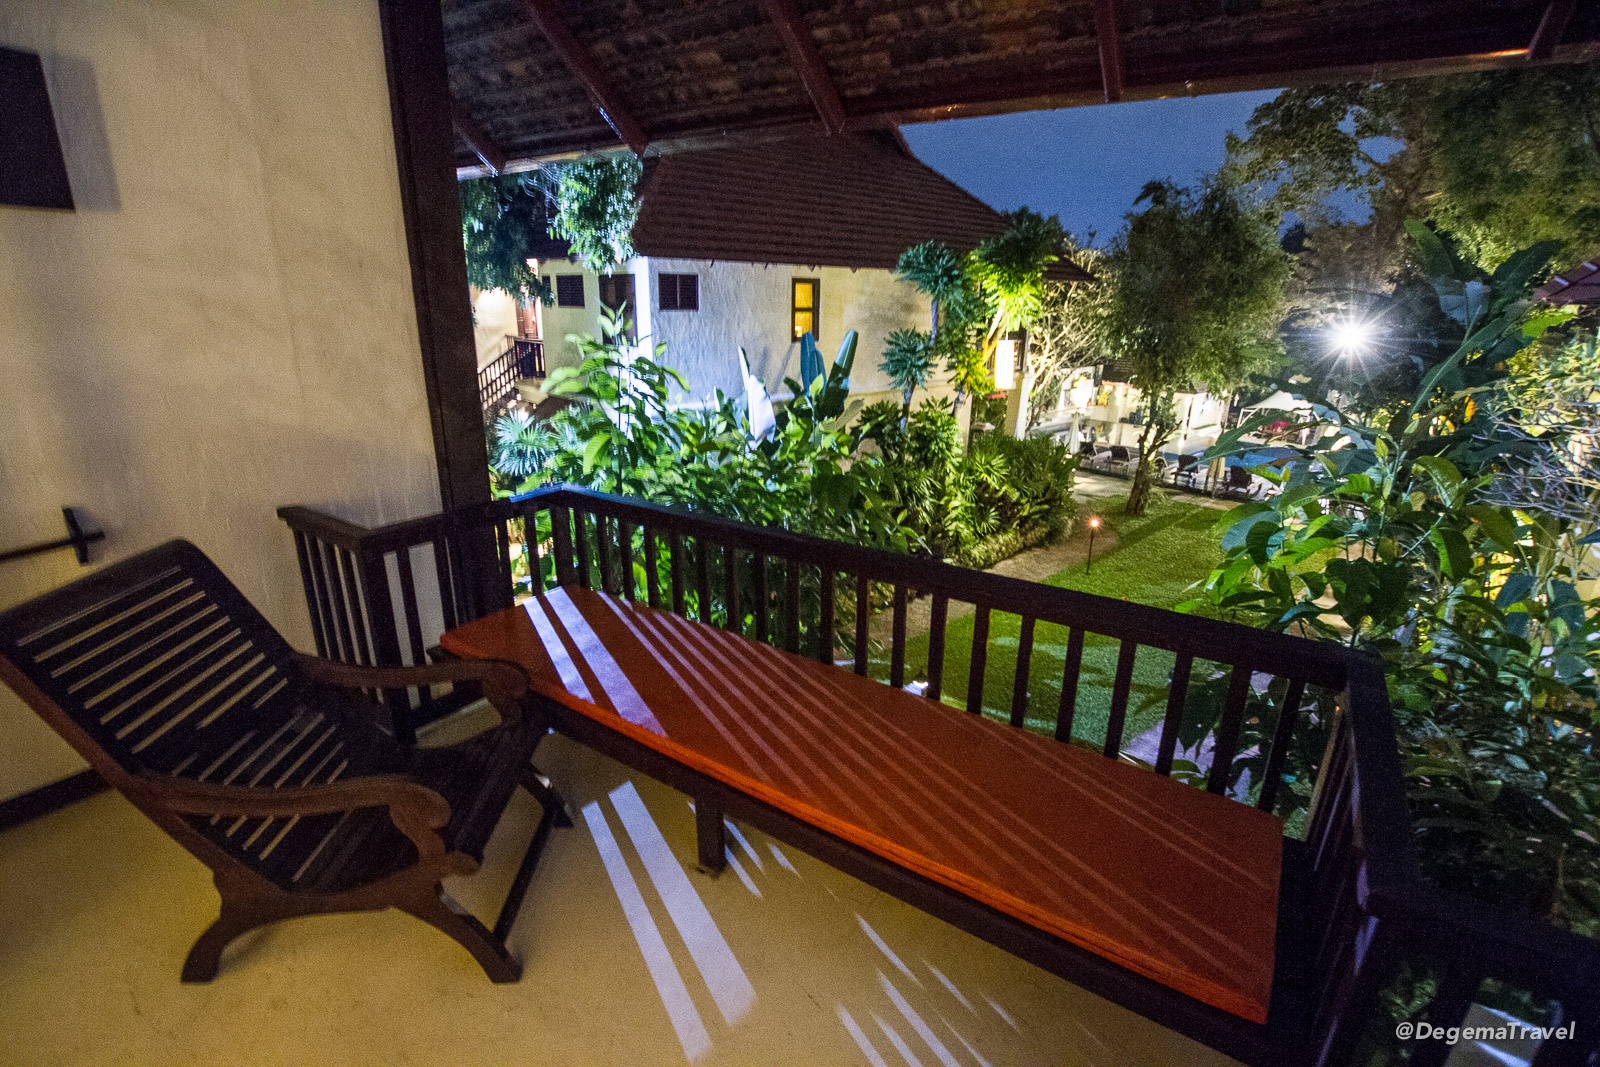 Balcony seating at Lanna Dusita Boutique Restaurant in Chiang Mai, Thailand